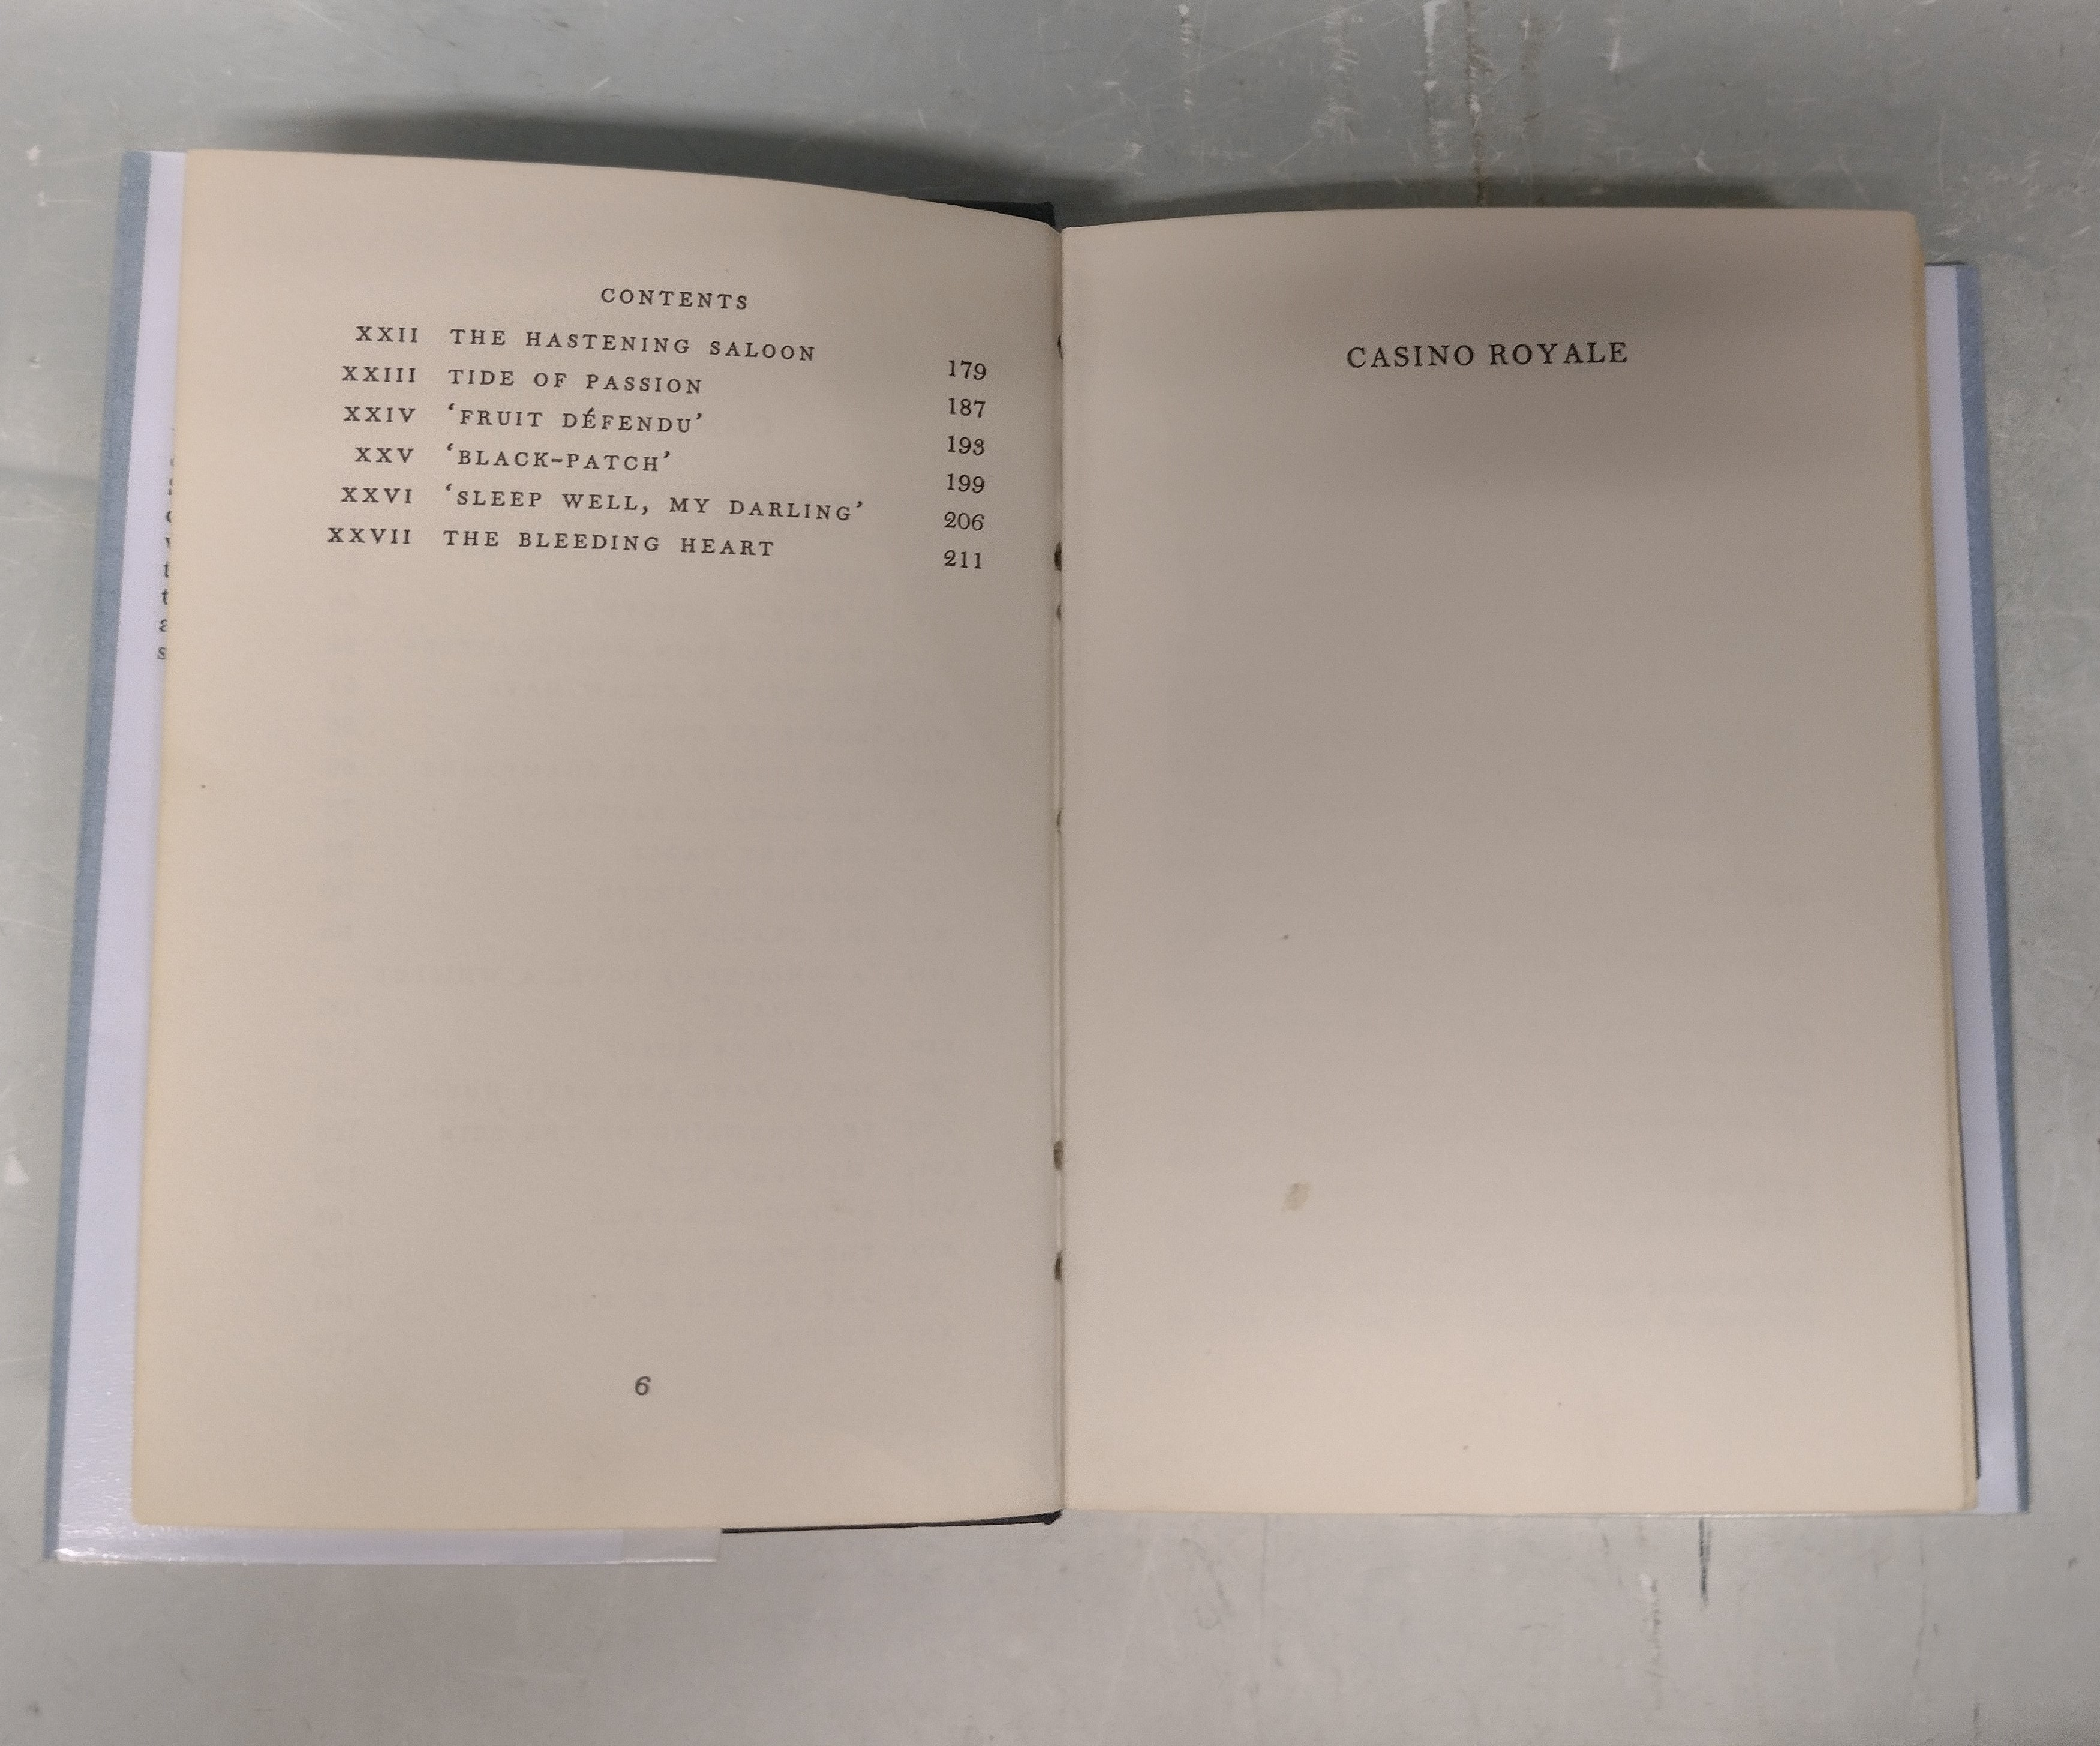 FIRST EDITION CASINO ROYALE BY IAN FLEMING - Image 6 of 7